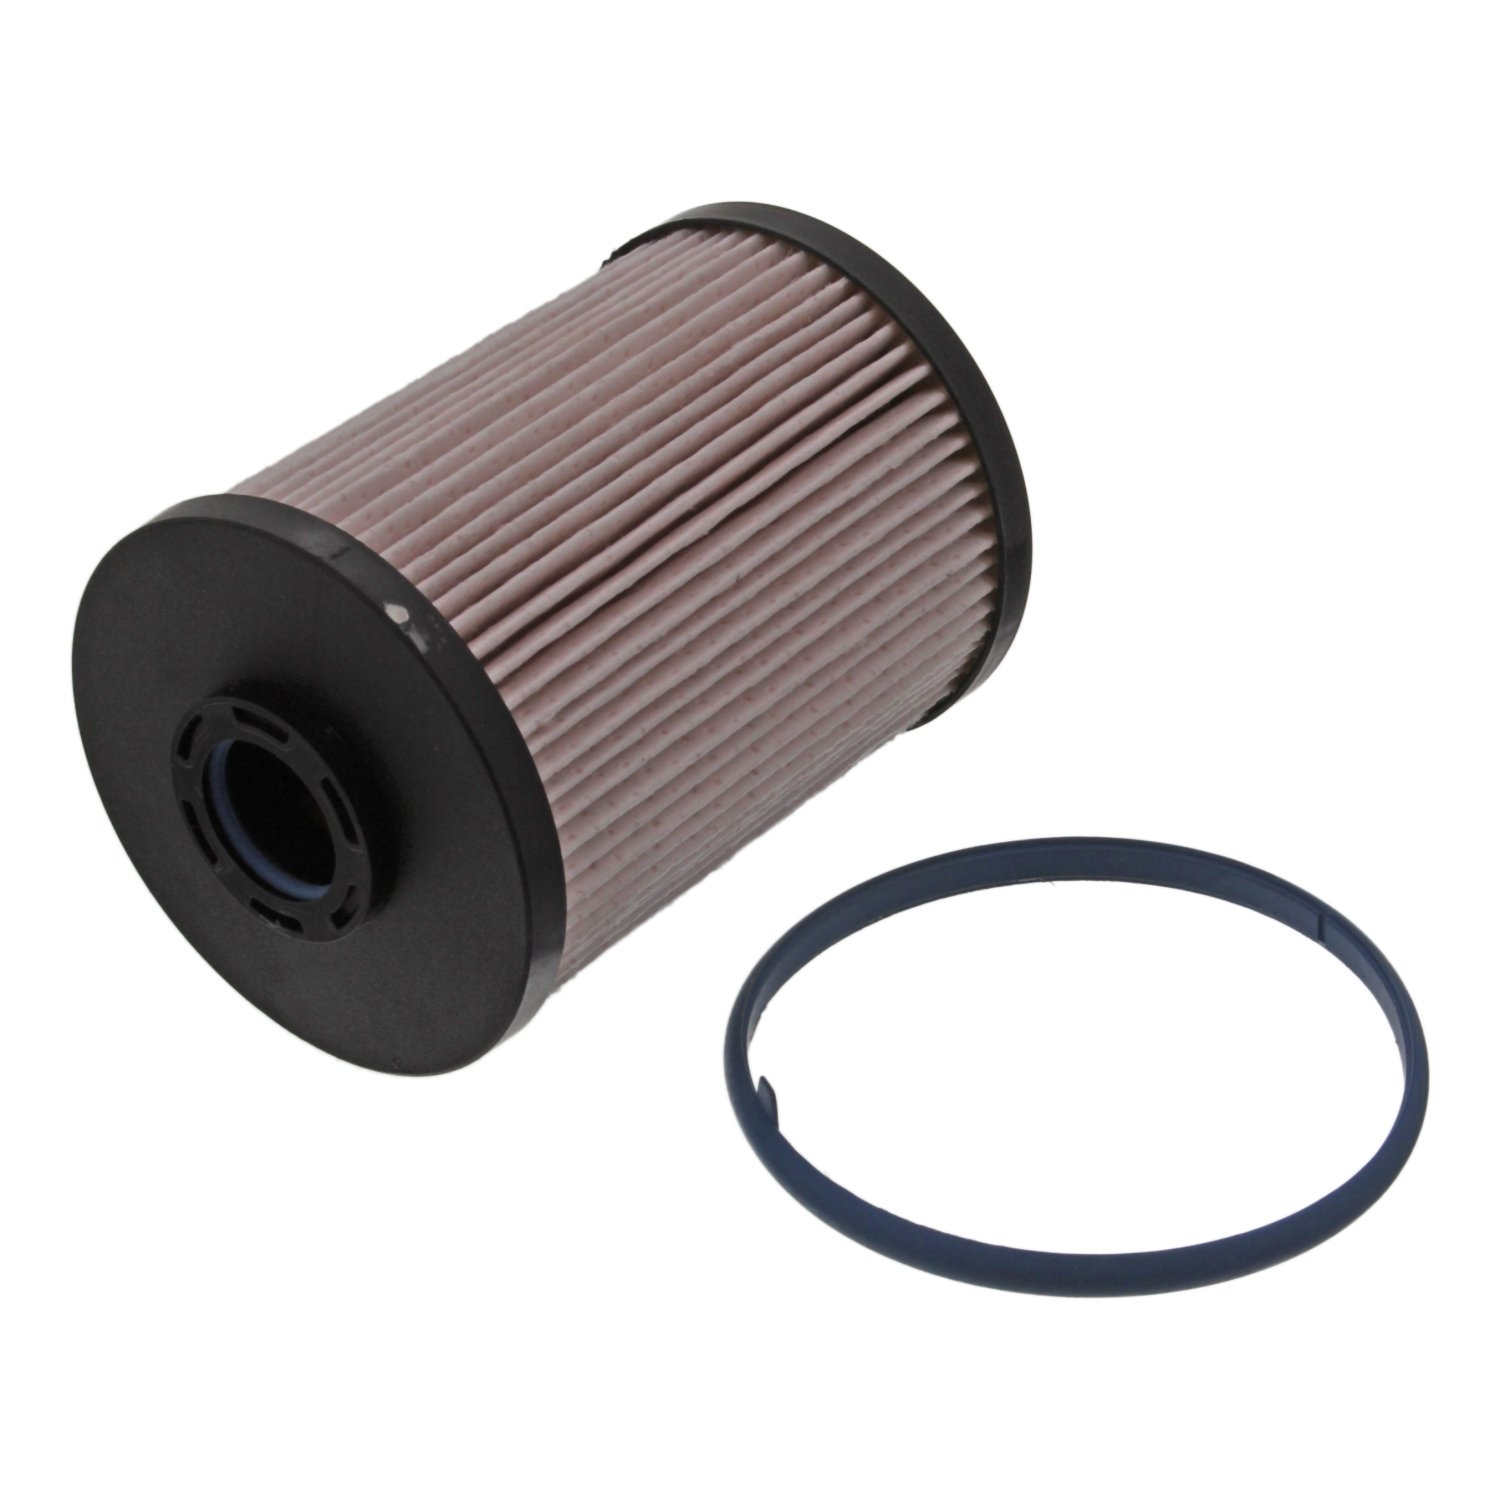 febi bilstein 34405 fuel filter with seal ring  - Pack of 1